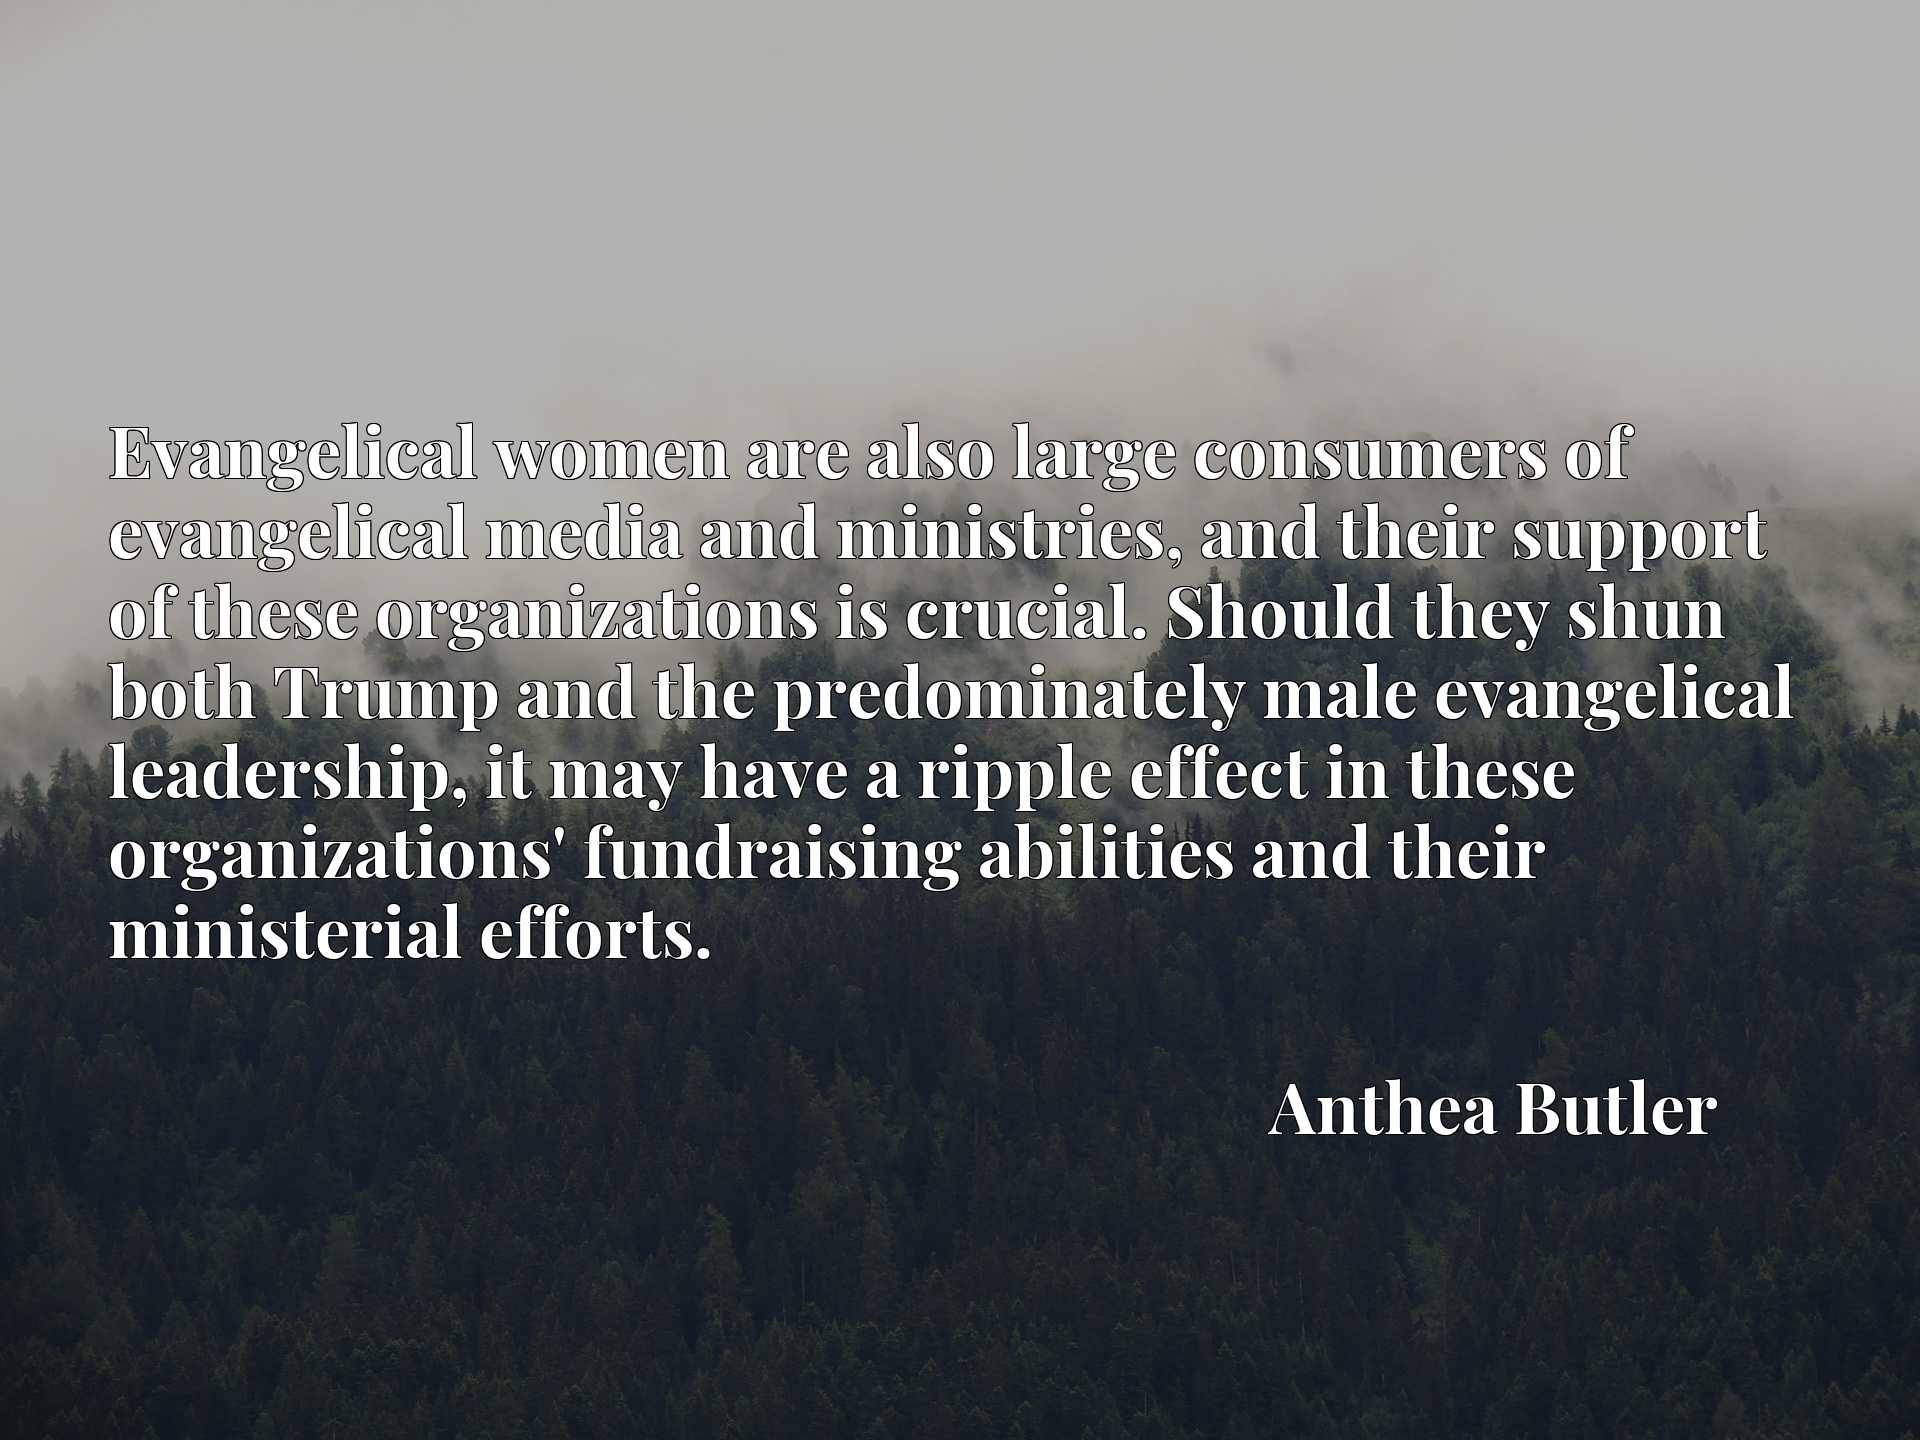 Quote Picture :Evangelical women are also large consumers of evangelical media and ministries, and their support of these organizations is crucial. Should they shun both Trump and the predominately male evangelical leadership, it may have a ripple effect in these organizations' fundraising abilities and their ministerial efforts.